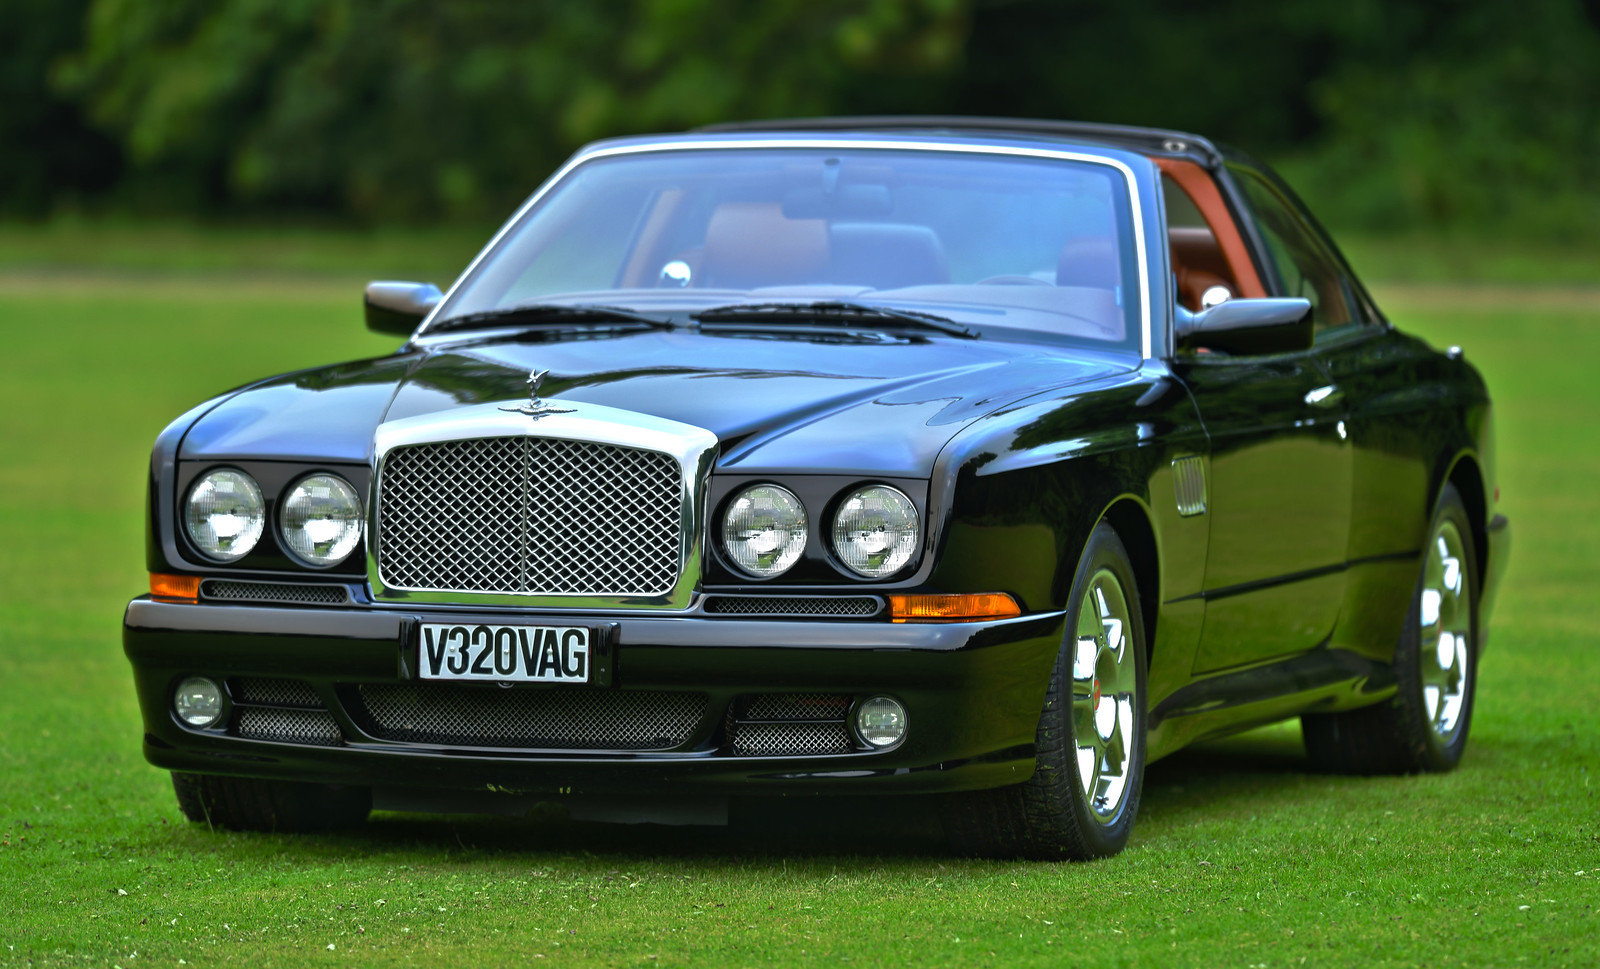 1999 Bentley Continental Sedanca Coupe SC LHD For Sale (picture 1 of 6)